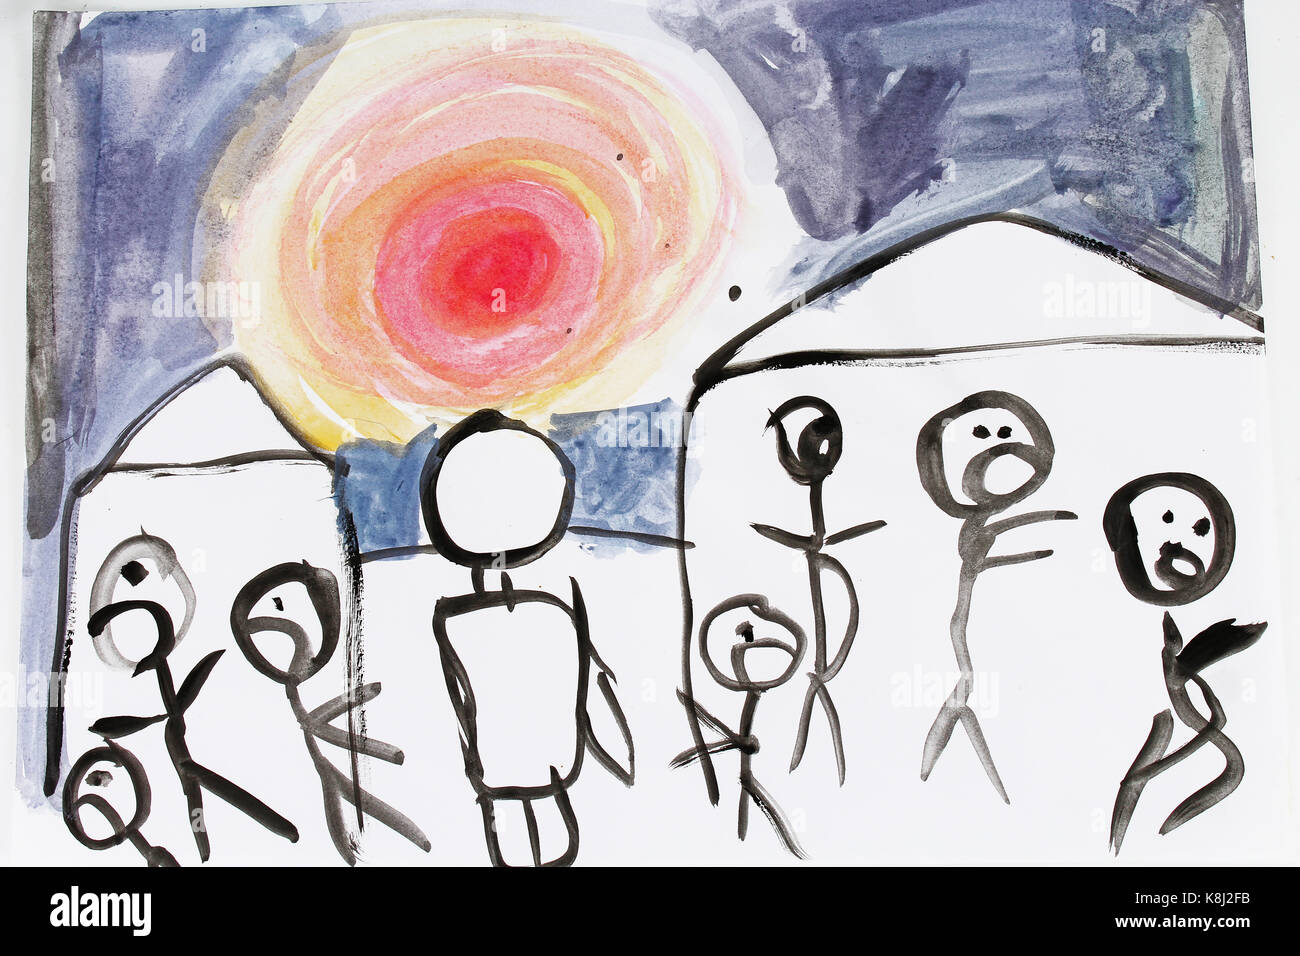 War bad dream child draw. Children drawings kid's draws collection.  Beautiful picture. Child